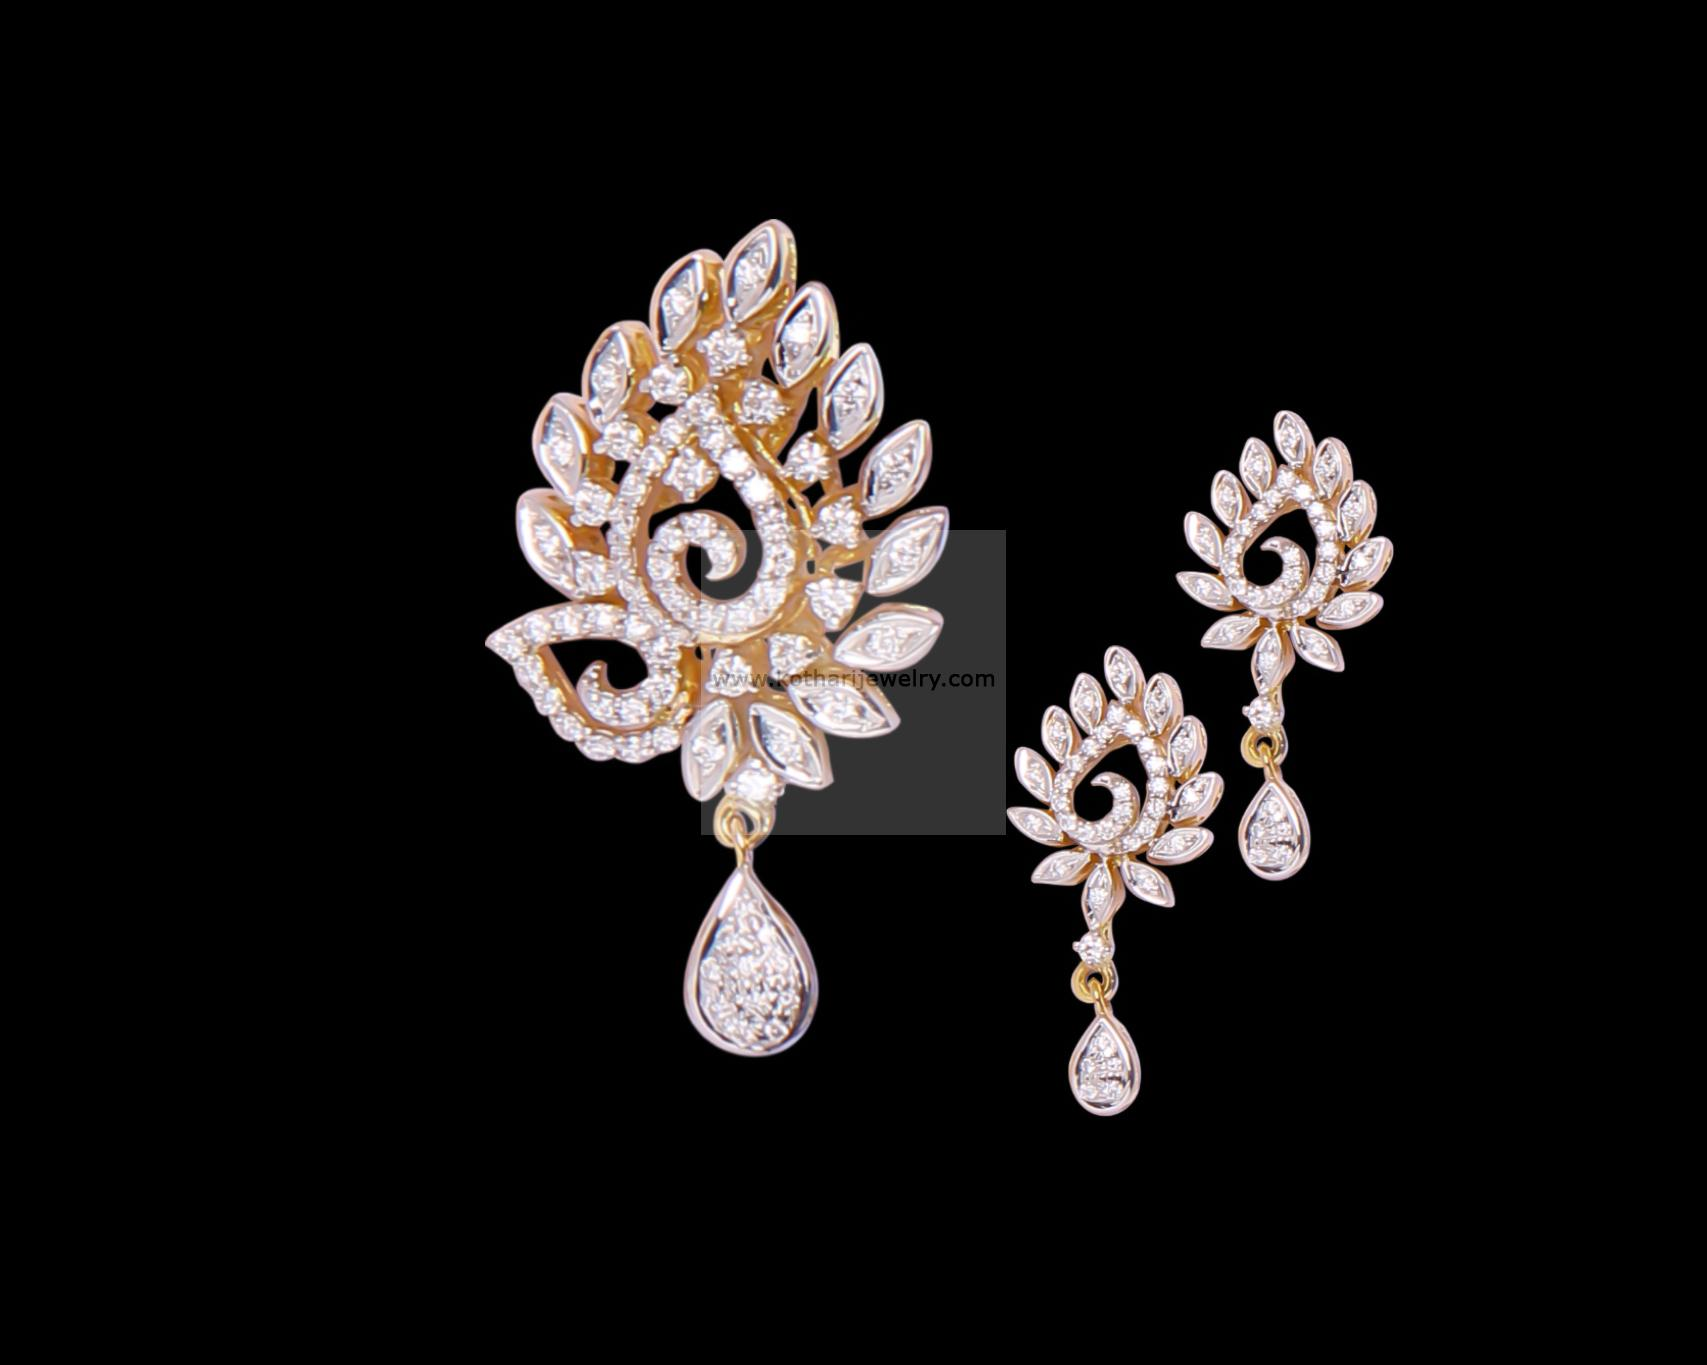 Diamond pendants designer diamond pendant set pearl diamond diamond pendant sets audiocablefo